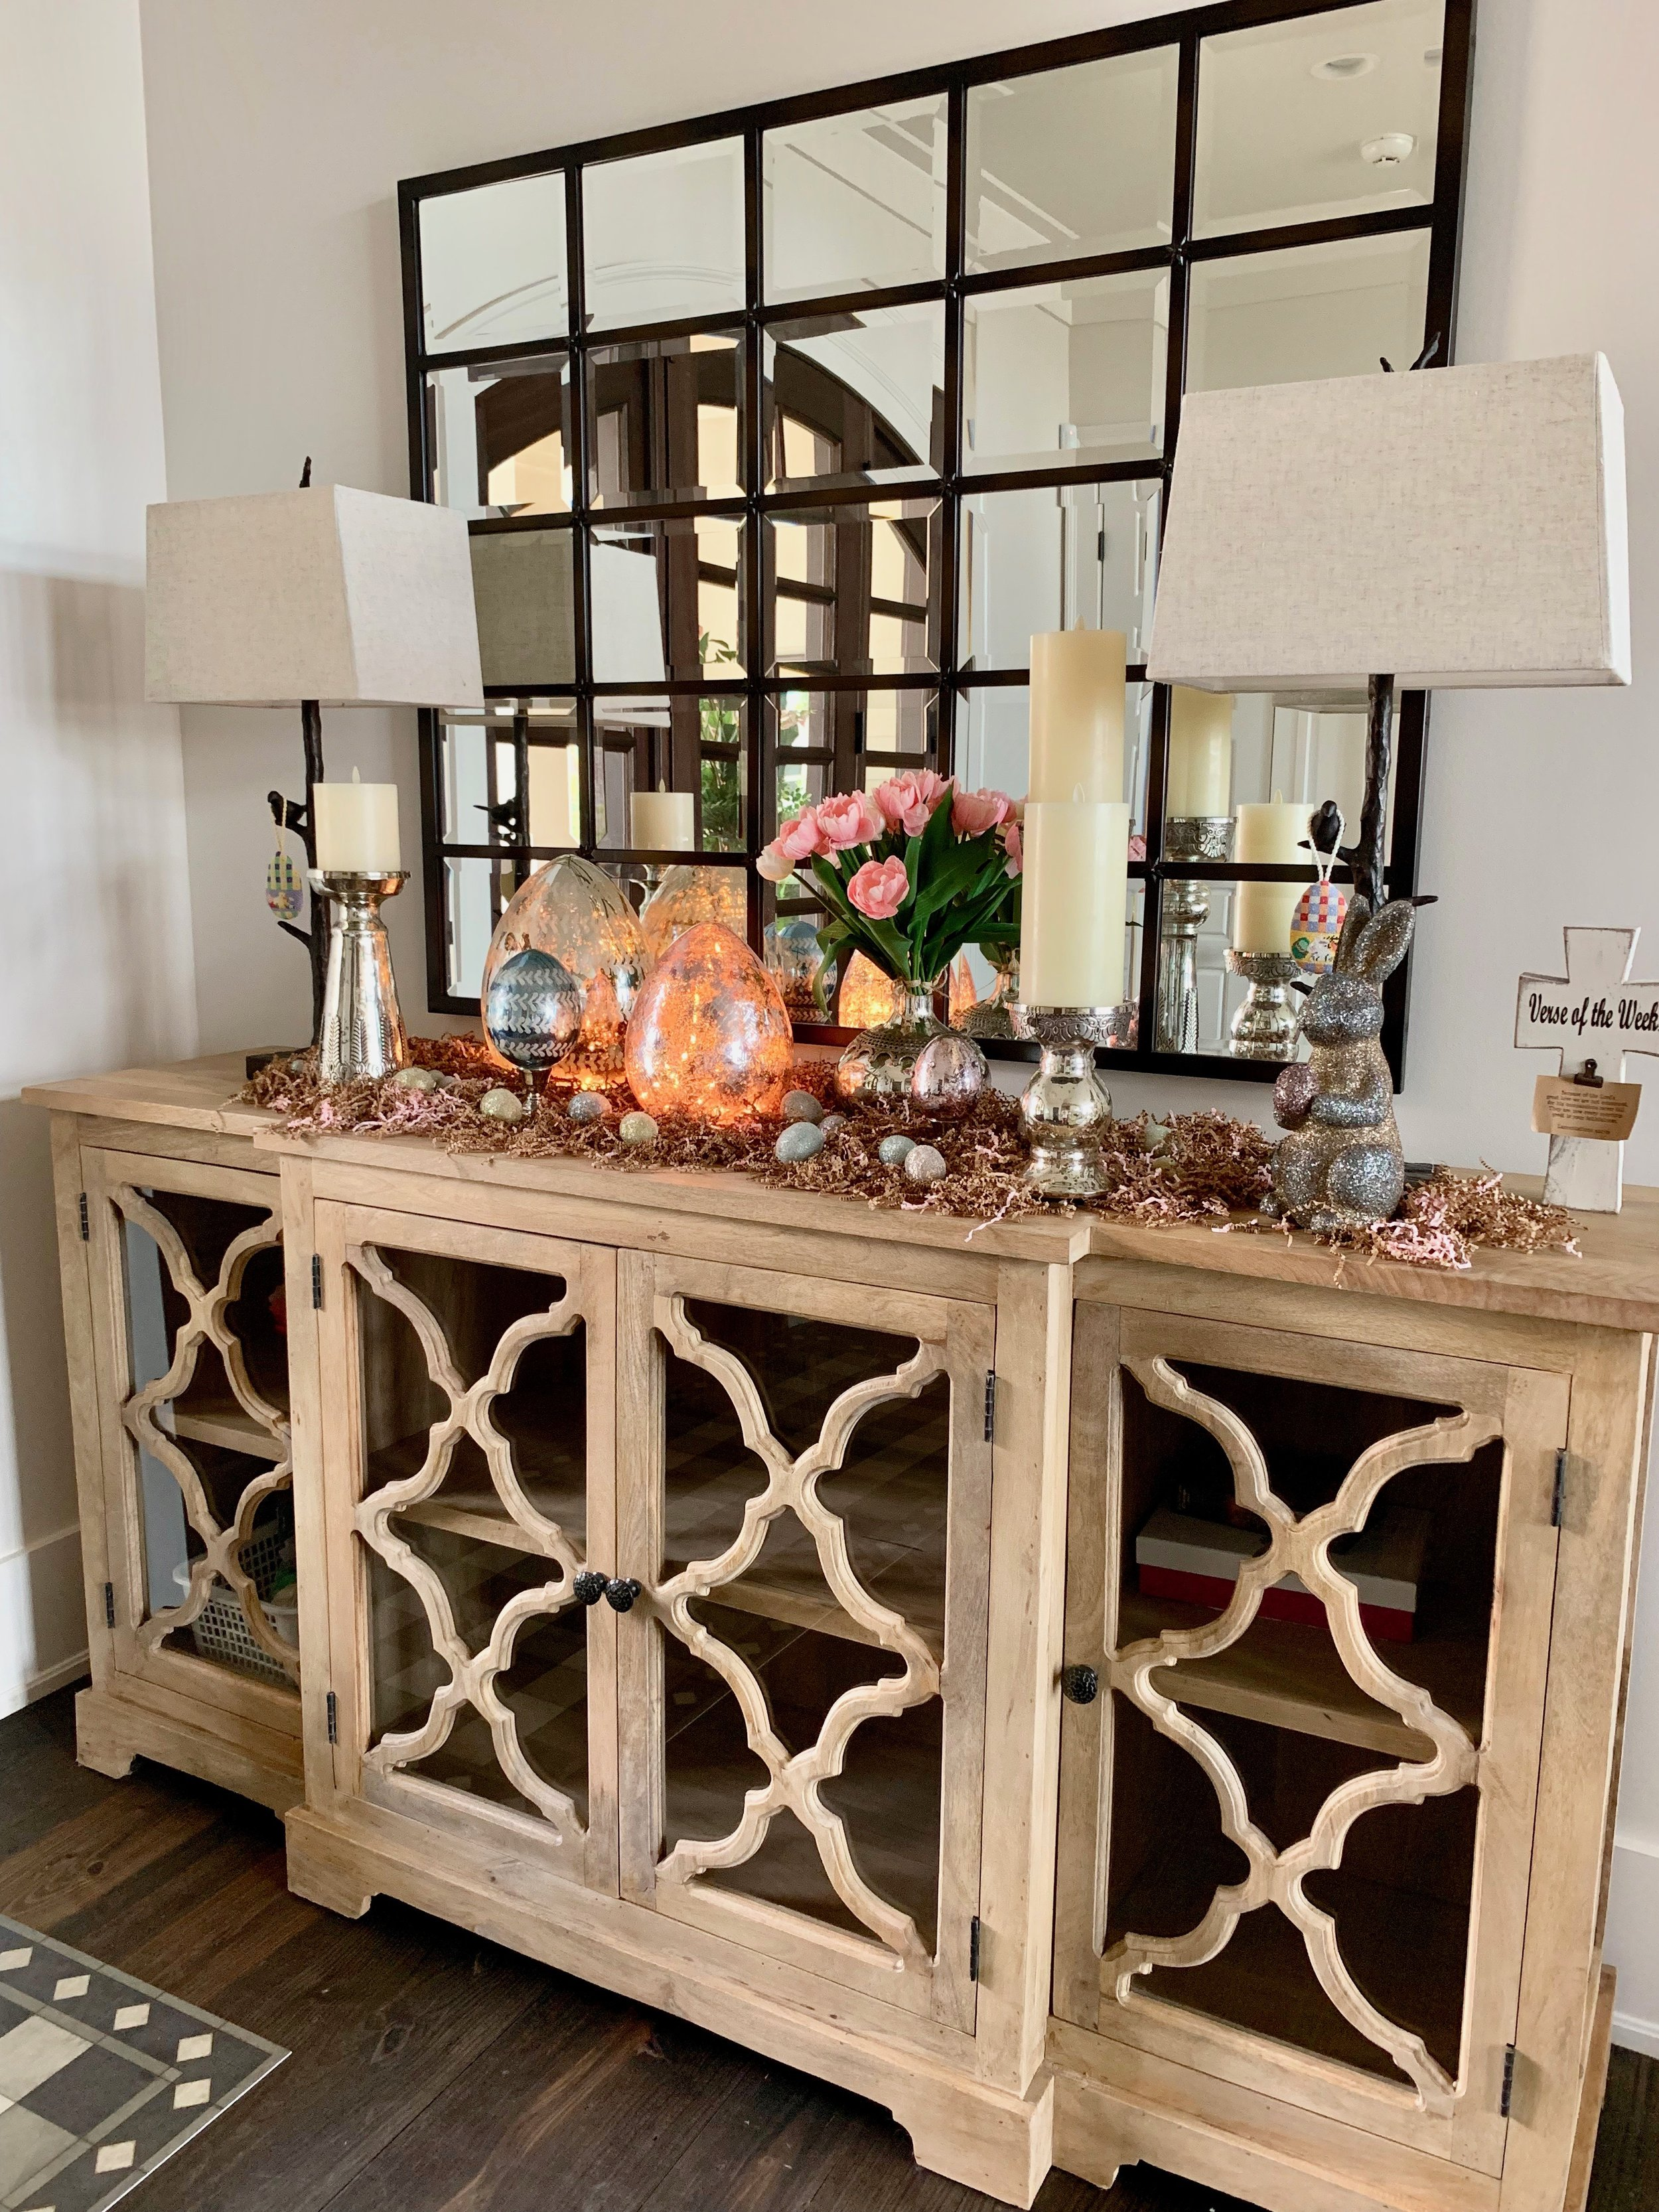 This my foyer from a different angle. I love this cabinet too. The mirror is a Pottery Barn Egan - the largest size.